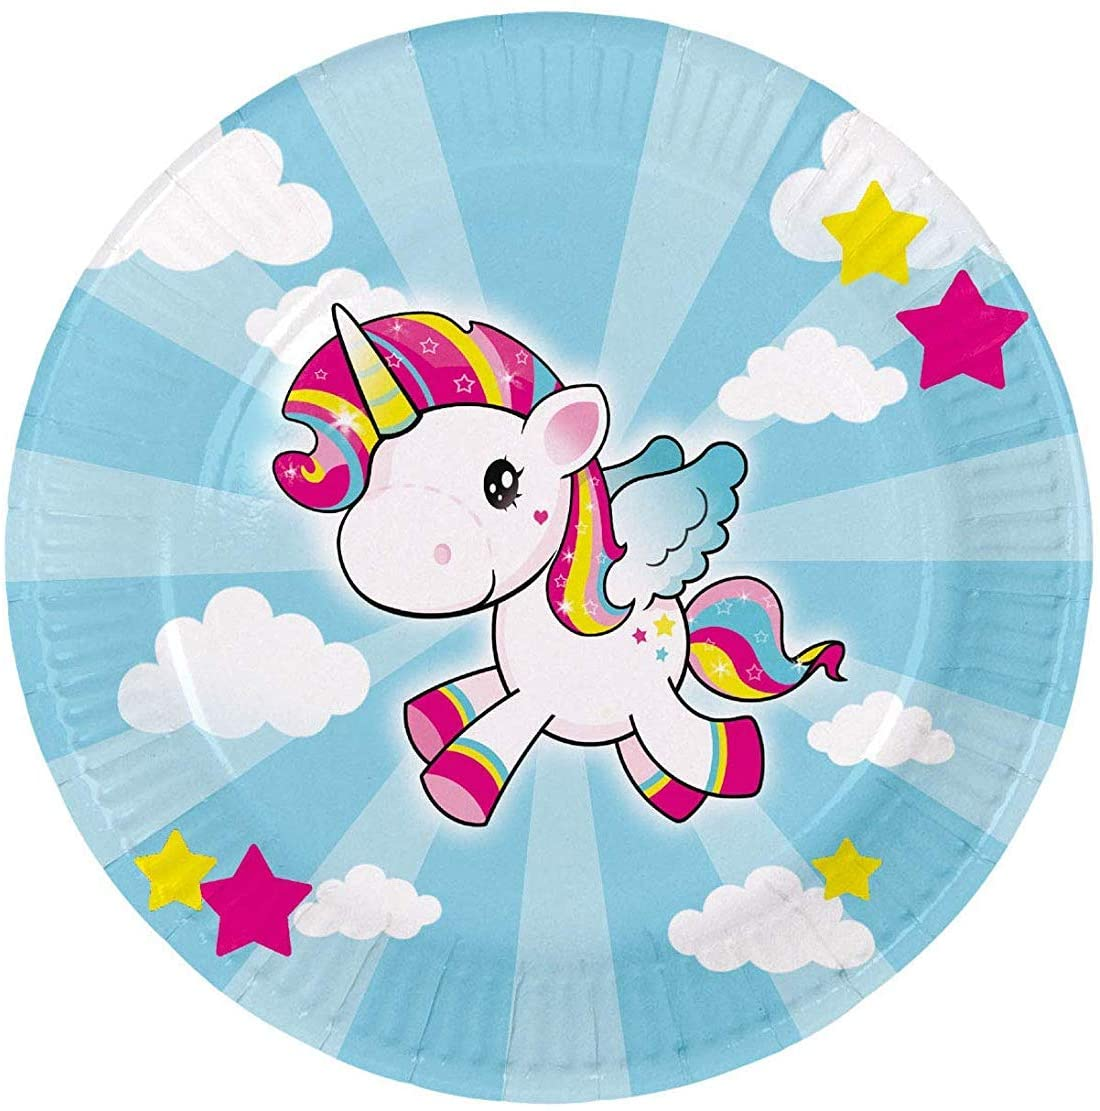 Folat 65040 Unicorn Disposable Plates 23 cm - 8 pieces, Multi Colours